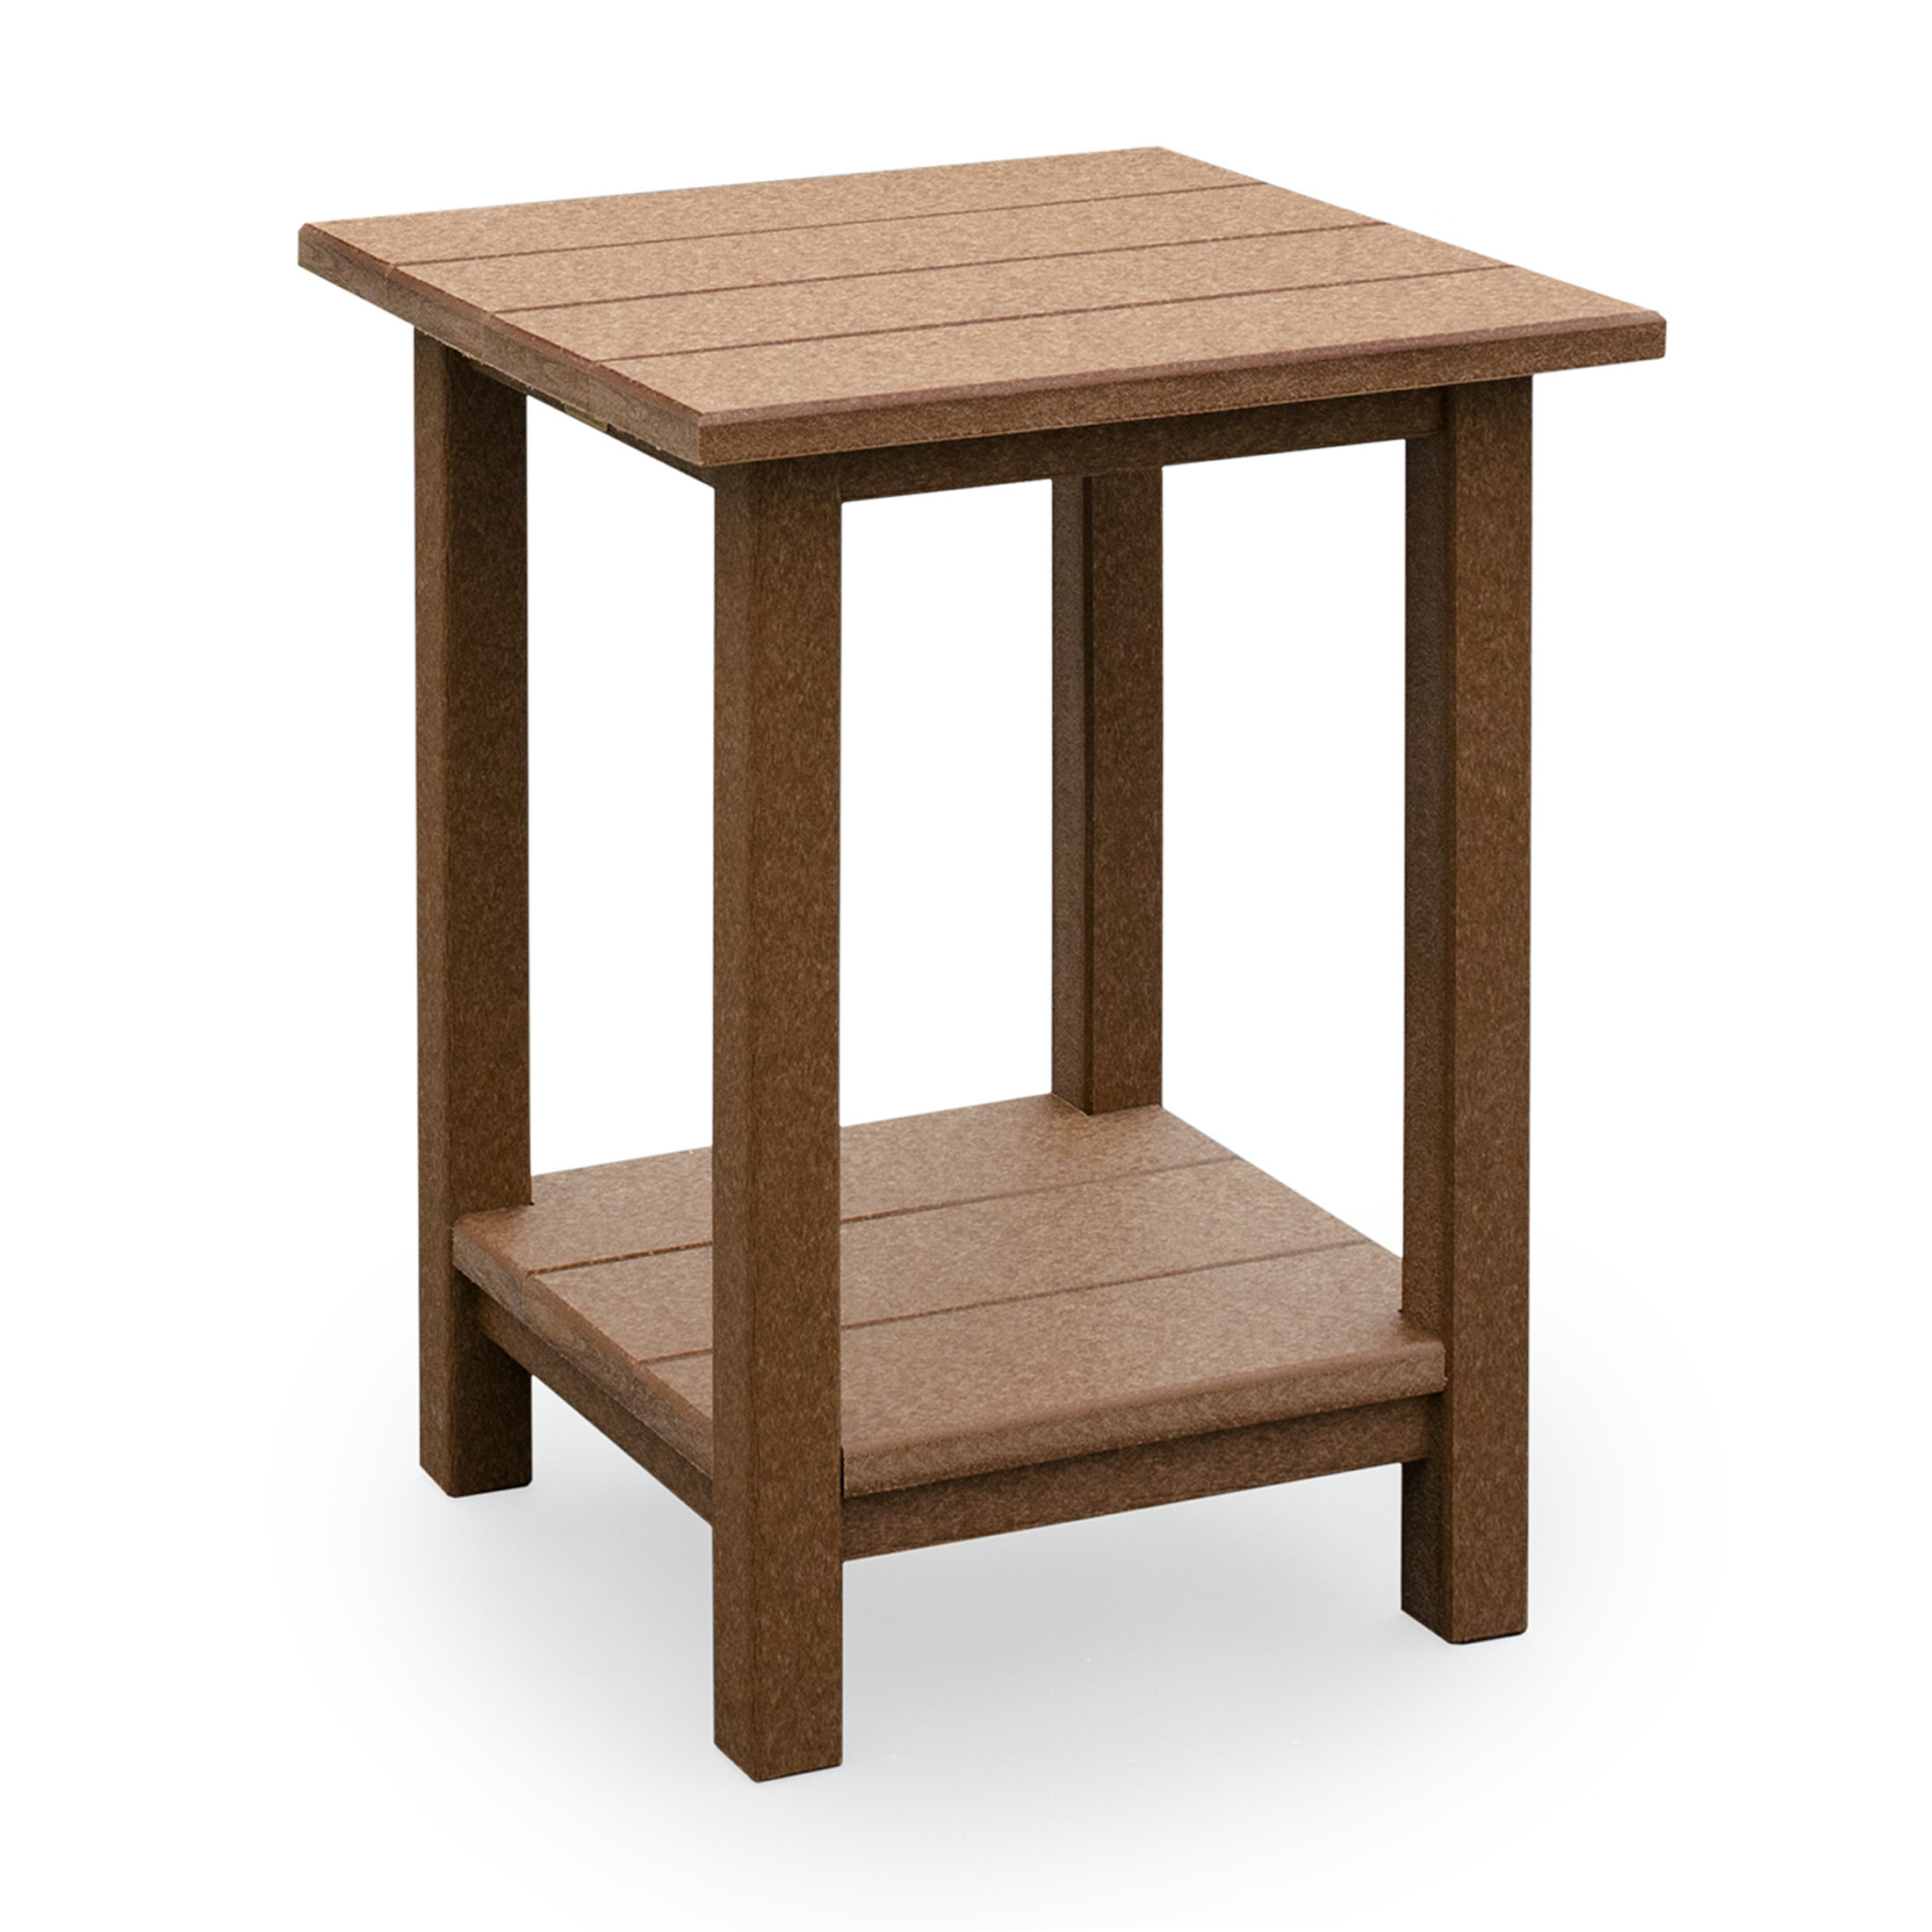 Amish Poly Wood Avonlea Garden Side Table